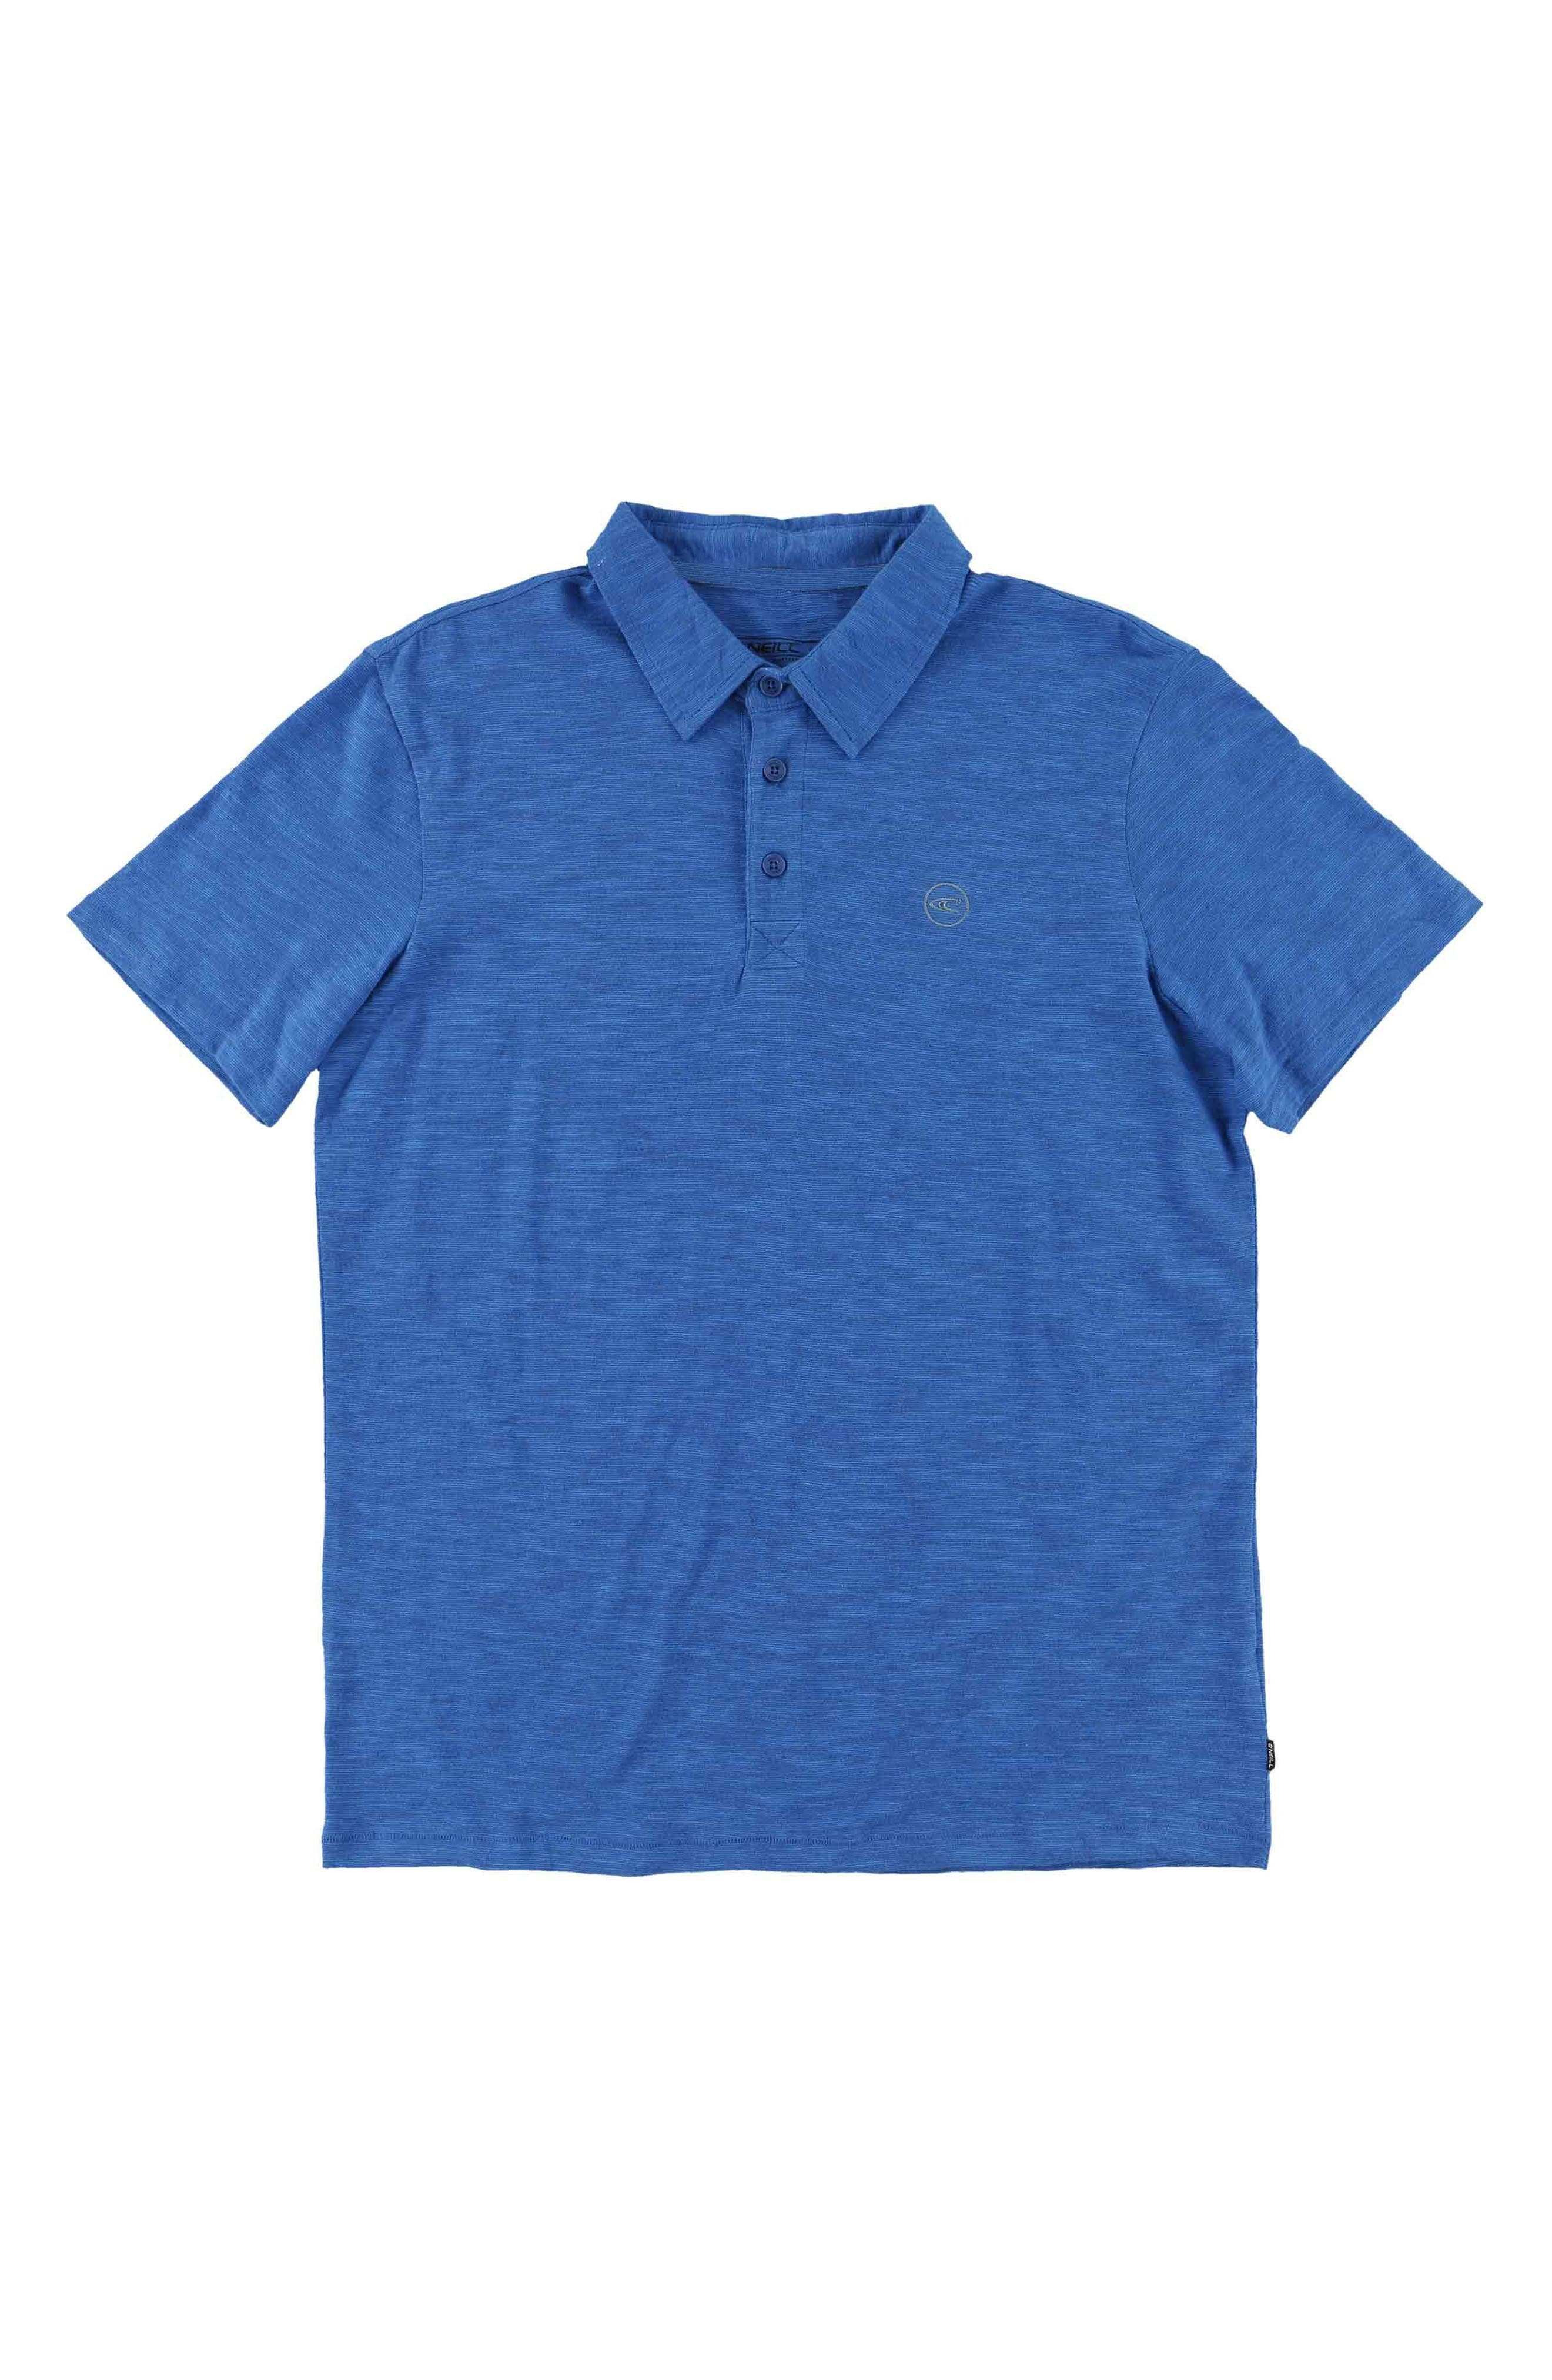 O'Neill The Bay Polo (Toddler Boys & Little Boys)